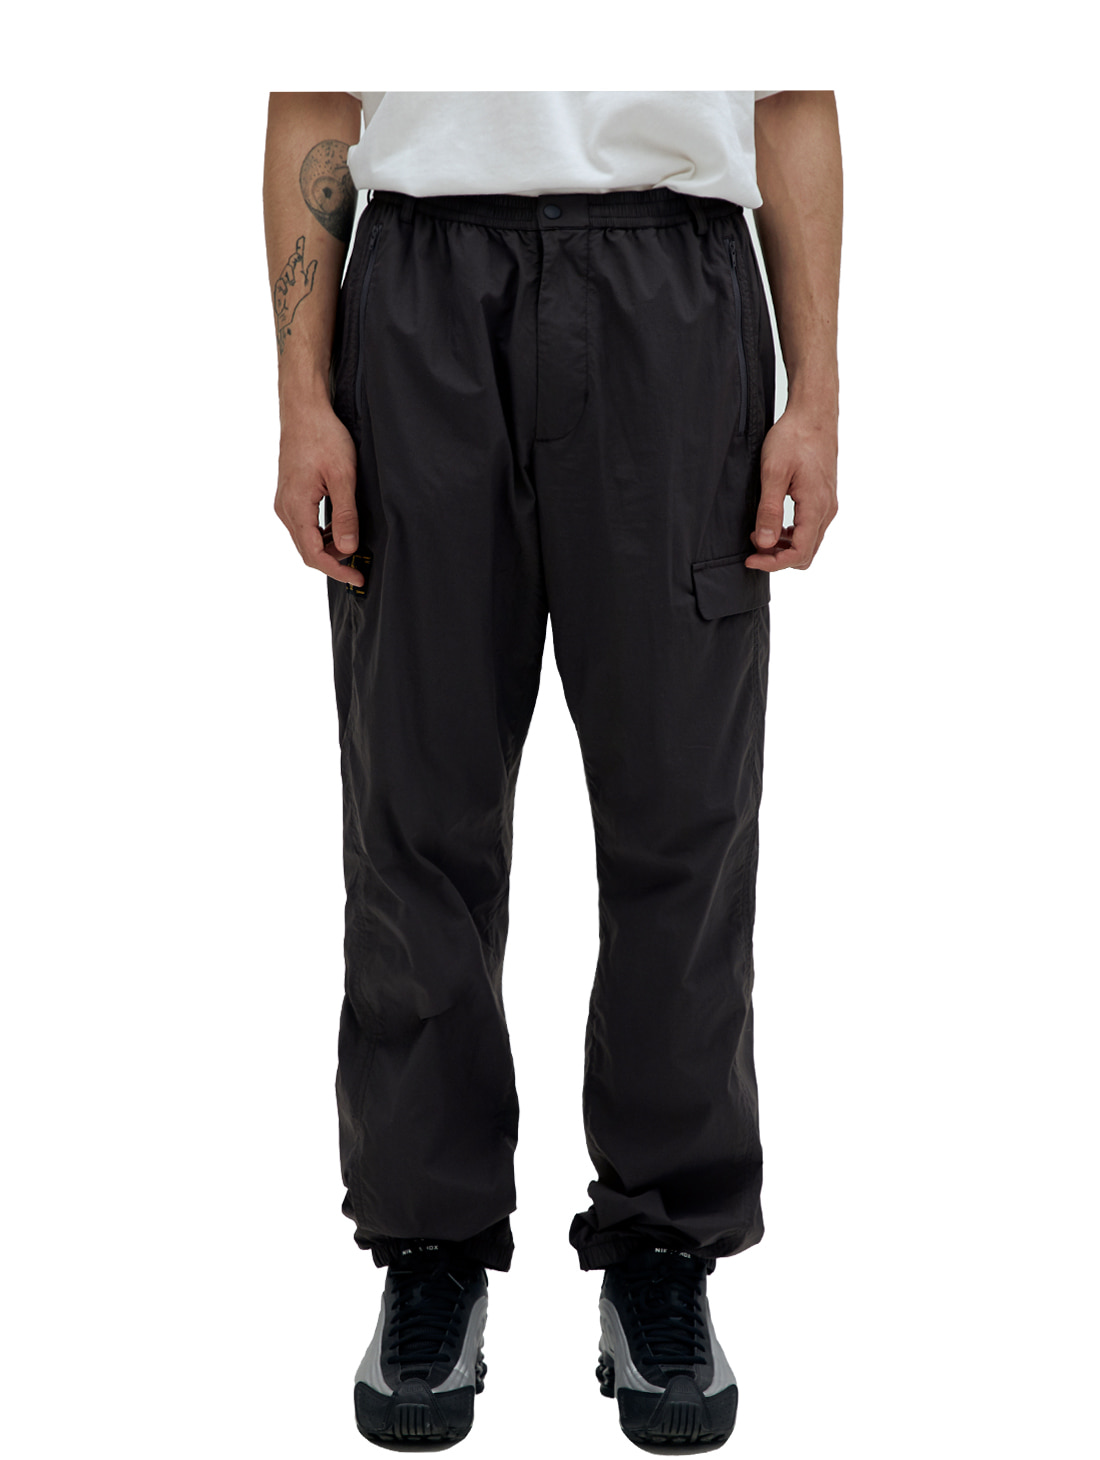 SSFC OFFICIAL CLUB TROUSERS - CHARCOAL